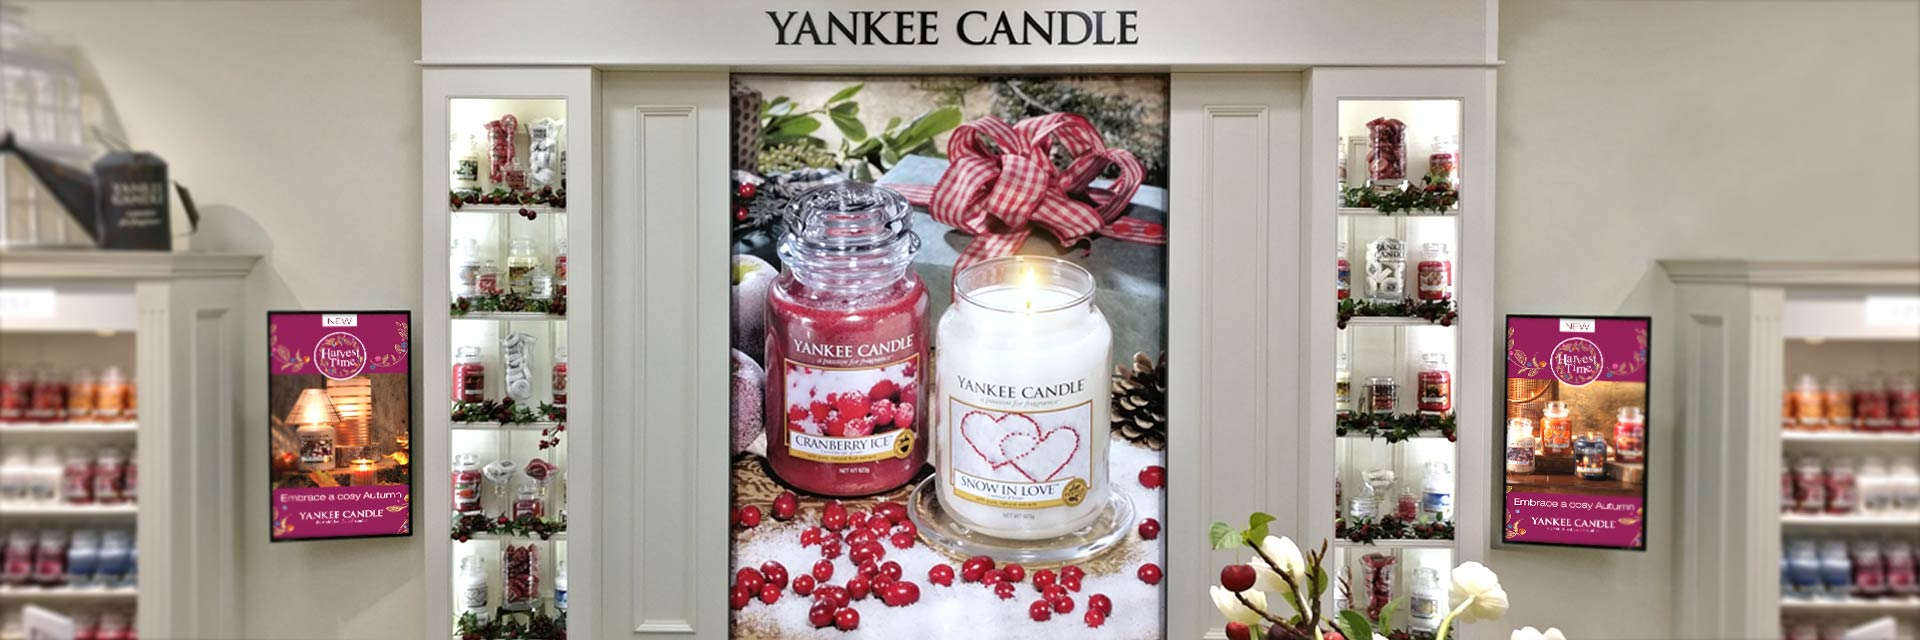 Yankee Candle POS Signage – Bluewater Shopping Centre, London